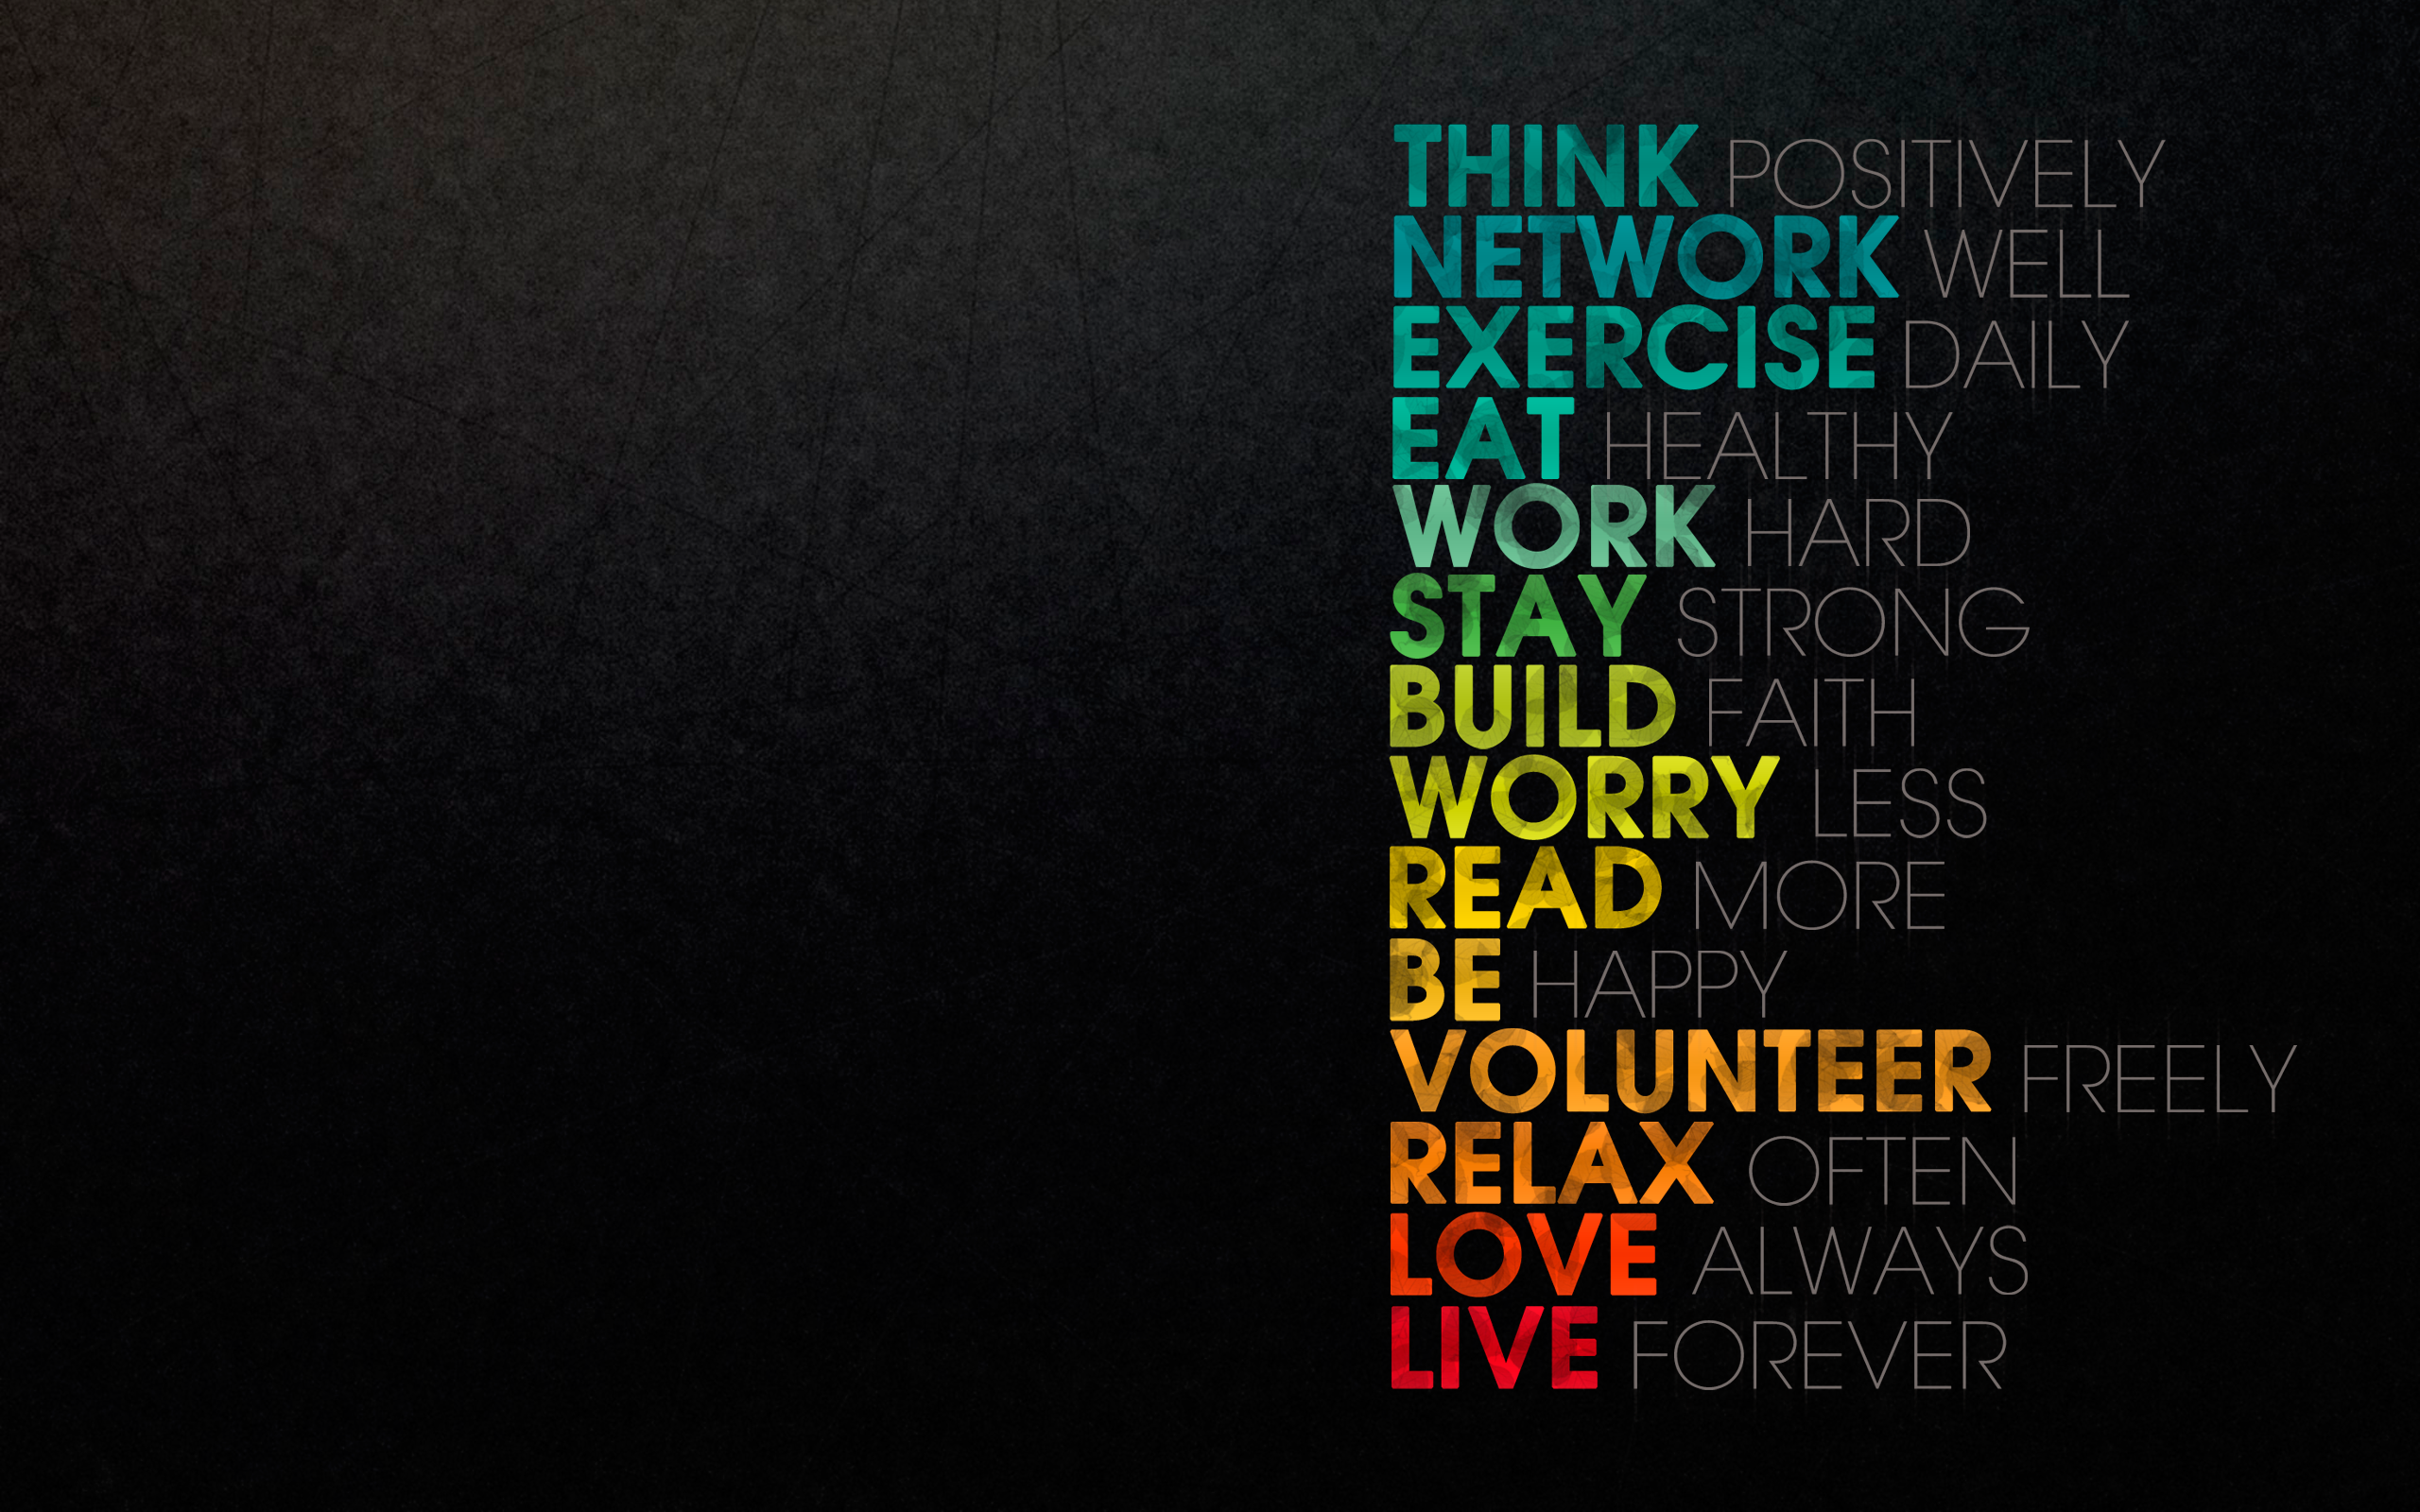 General 2560x1600 quote digital art motivational typography simple background inspirational colorful artwork text minimalism humor